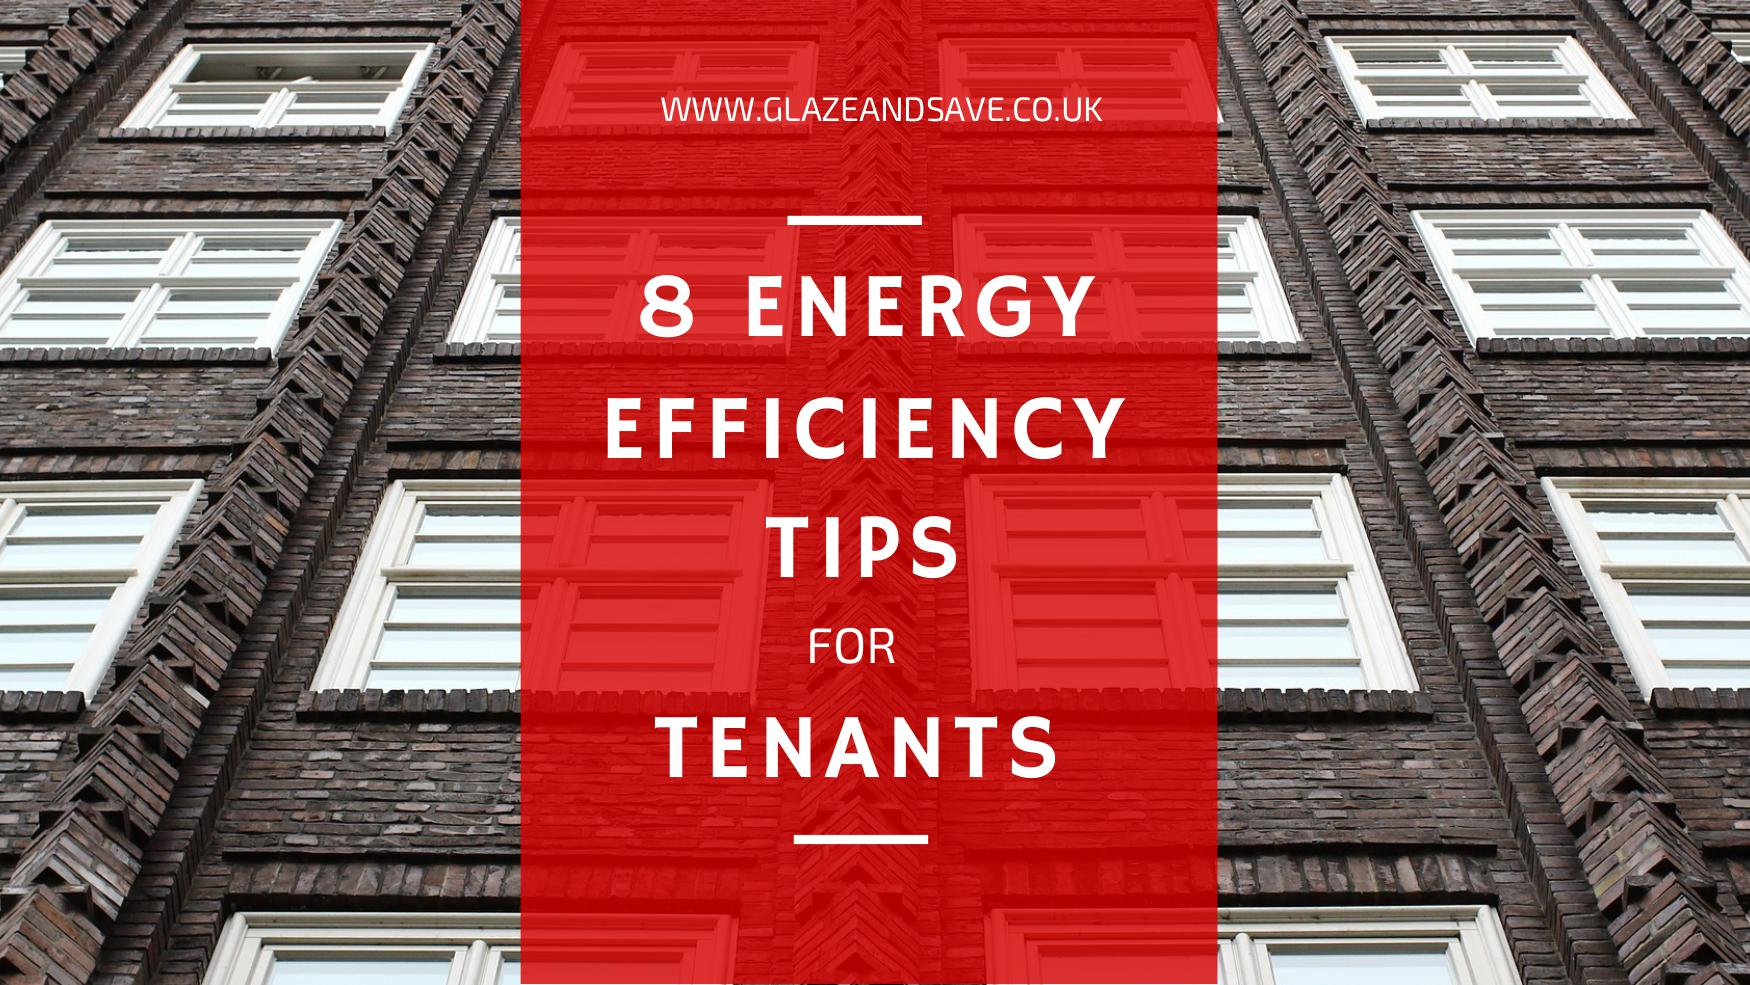 8 energy efficiency tips for tenants by Glaze & Save bespoke magnetic secondary glazing and draught proofing based in Perth Scotland.